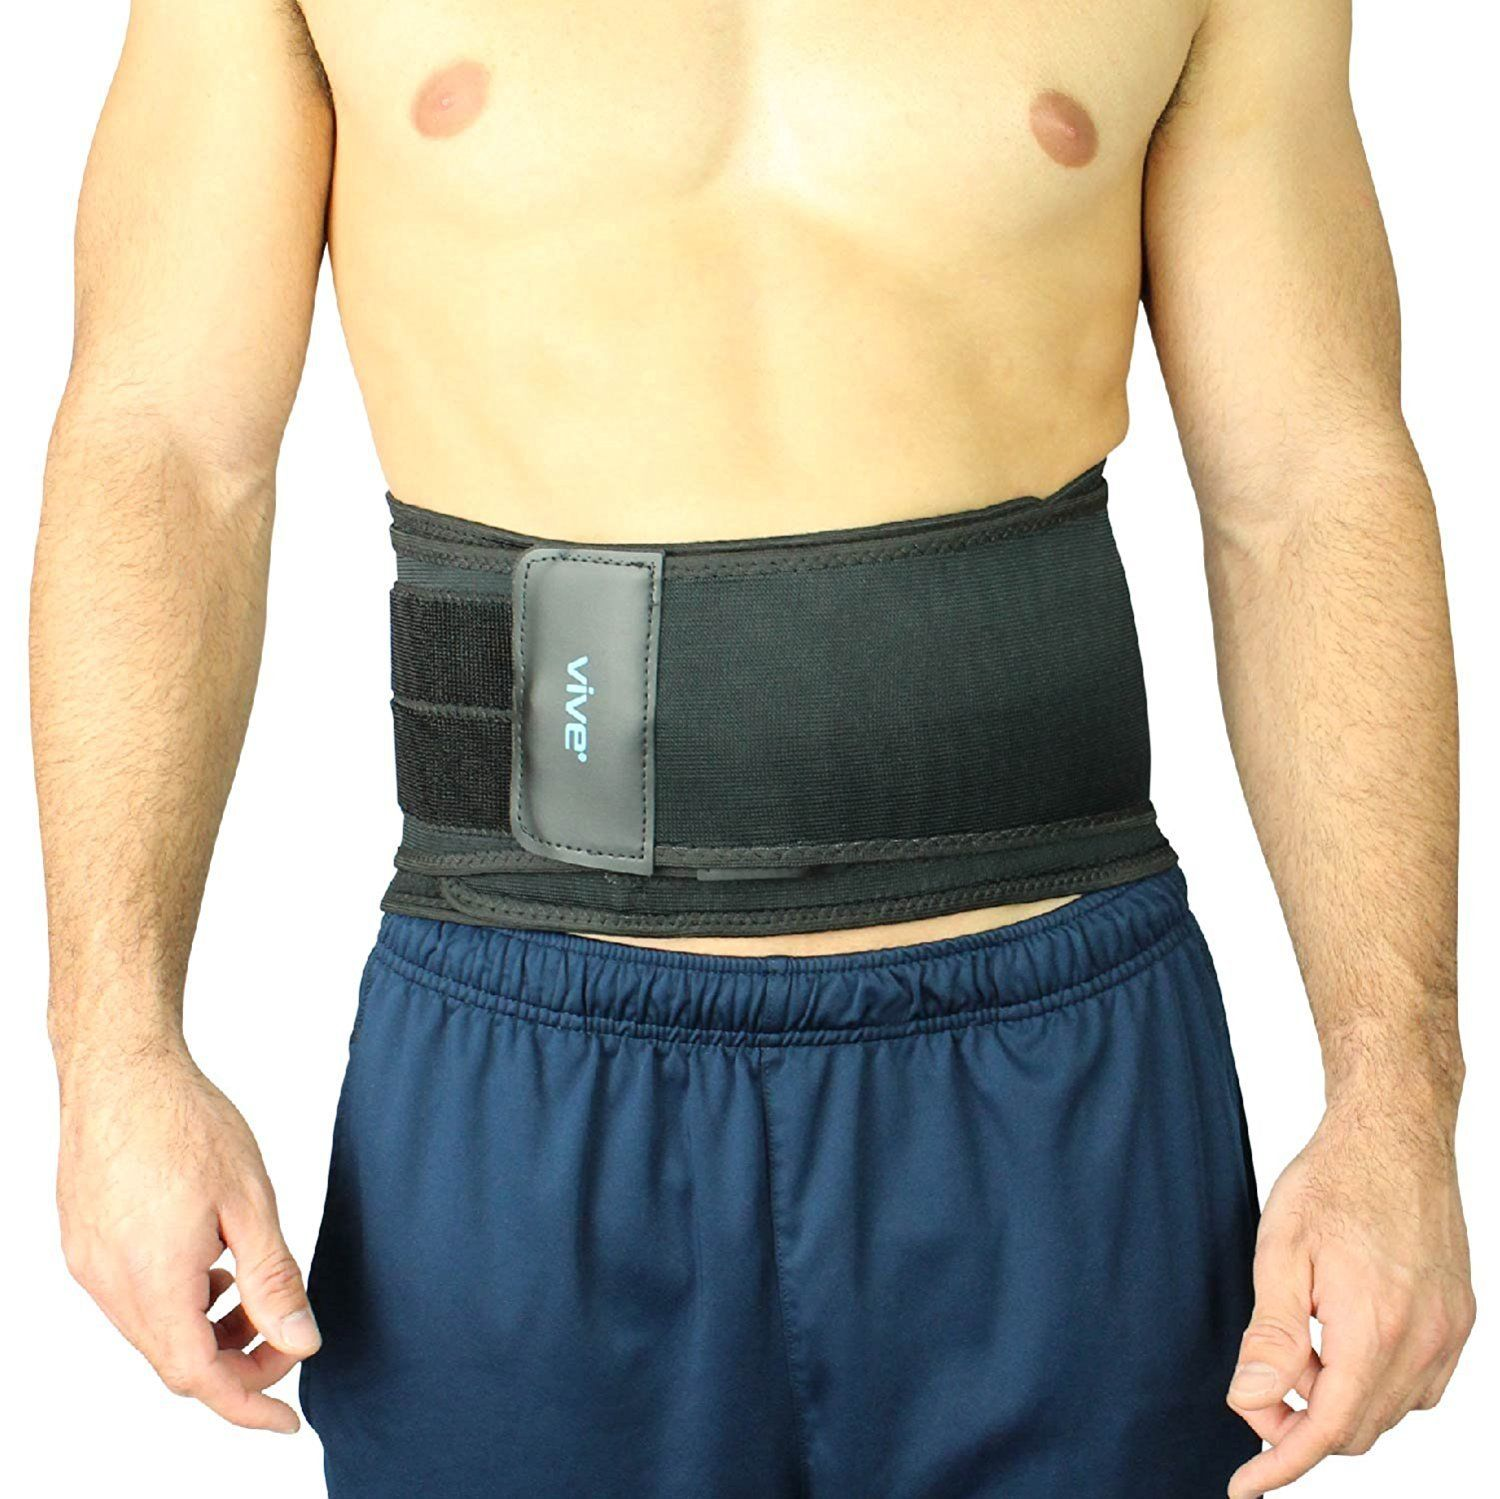 Vive Lumbar Support Back Brace with Dual Tightening Straps.